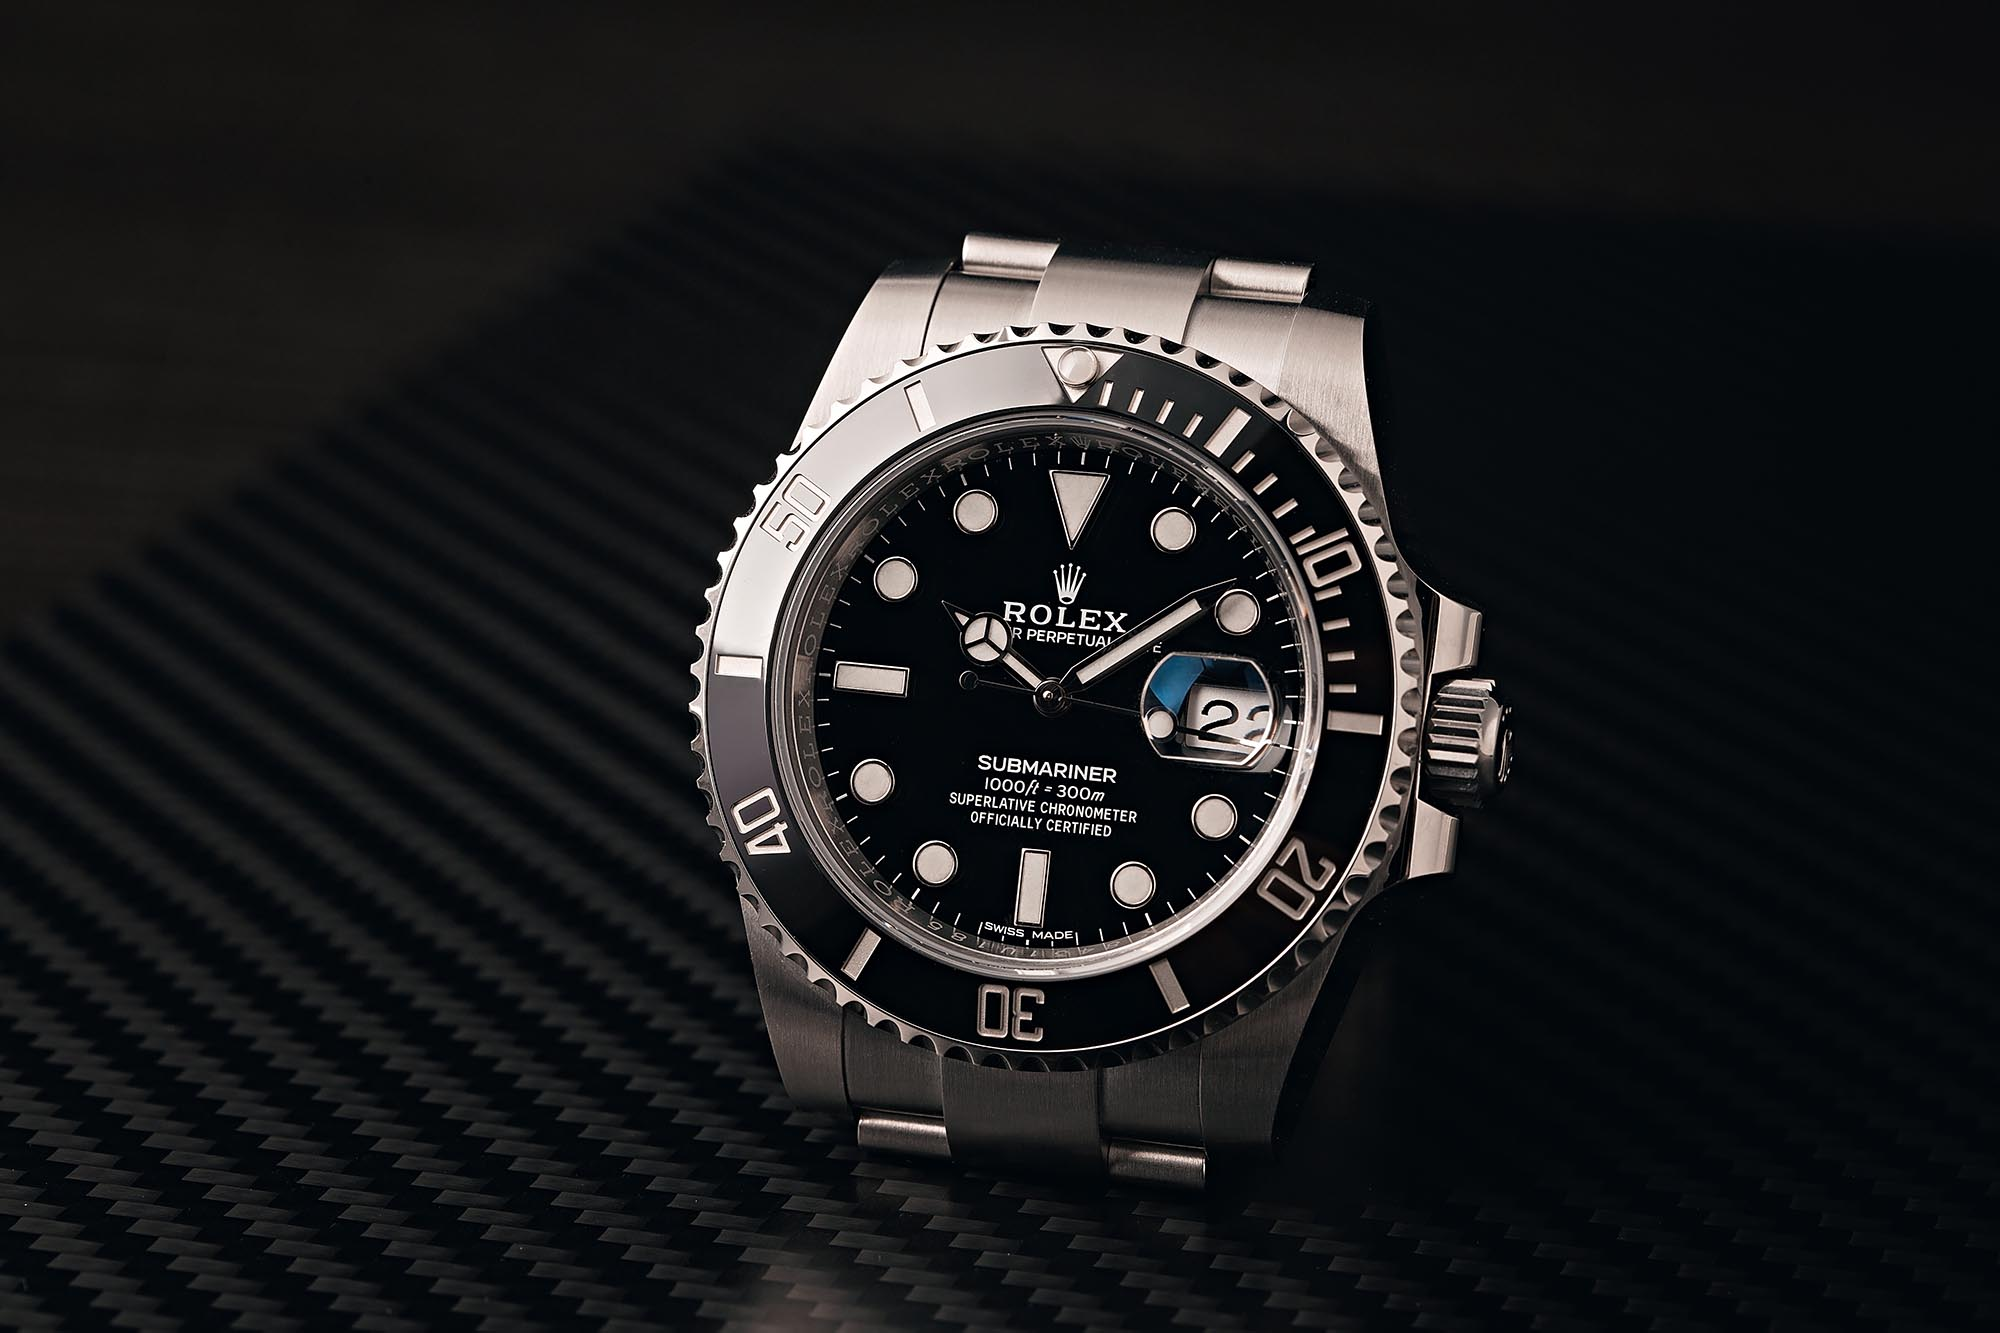 Rolex Submariner 5513 Key Features And Variations